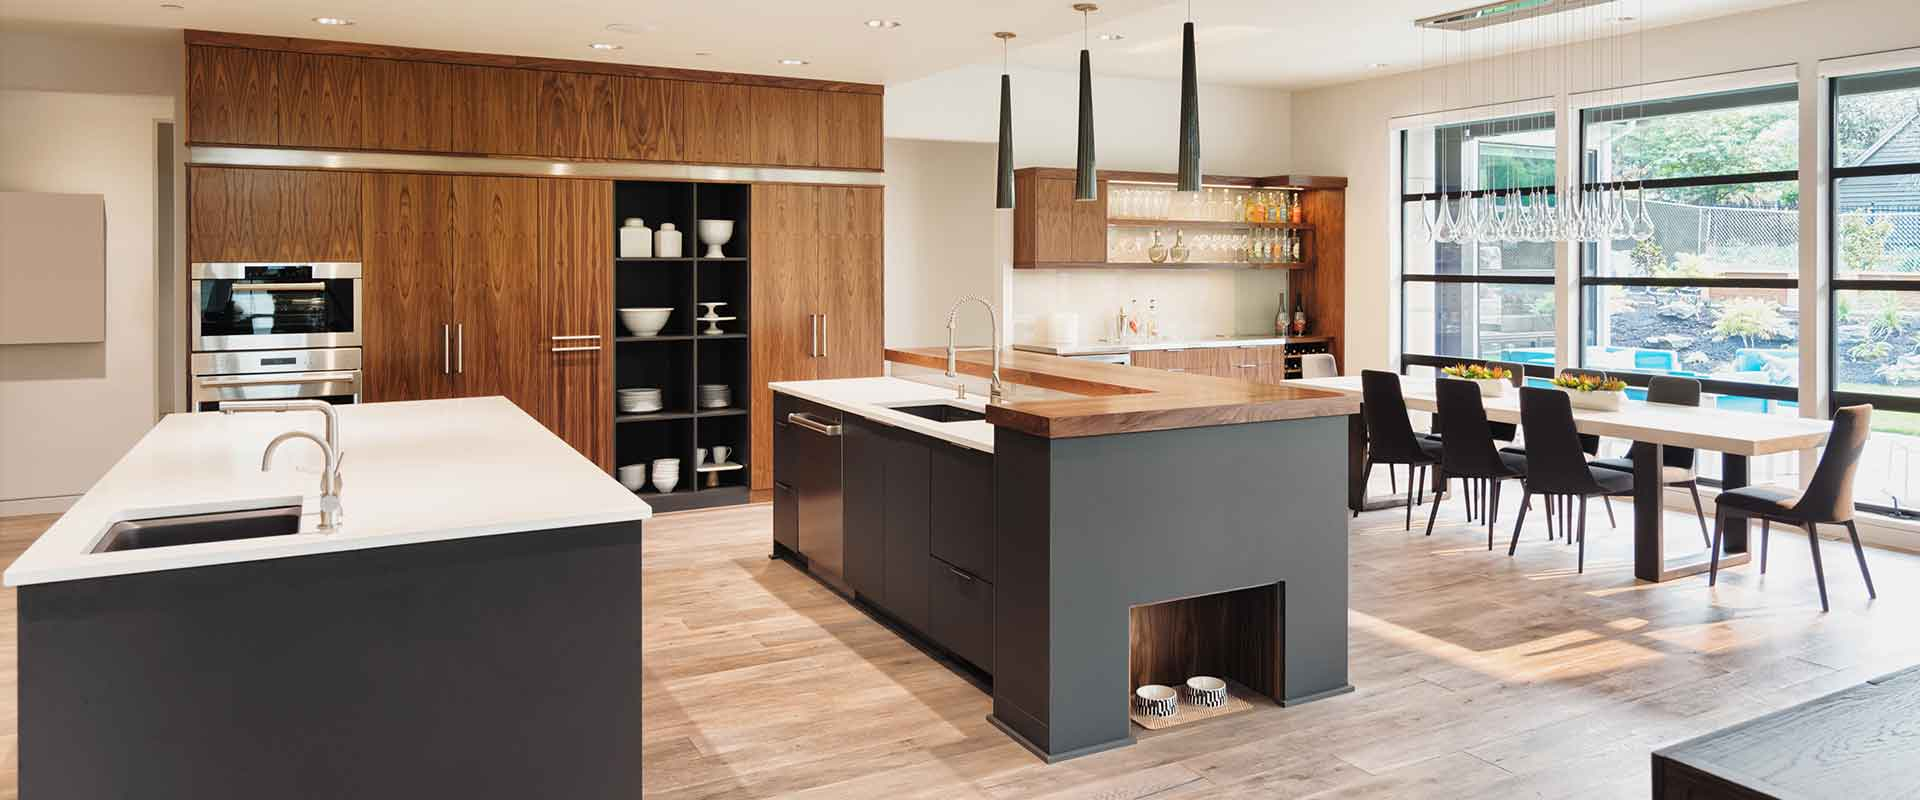 Cuttwood Construction & Cabinets Custom Wood Cabinets, Custom Kitchen Cabinets and Kitchen Remodeling